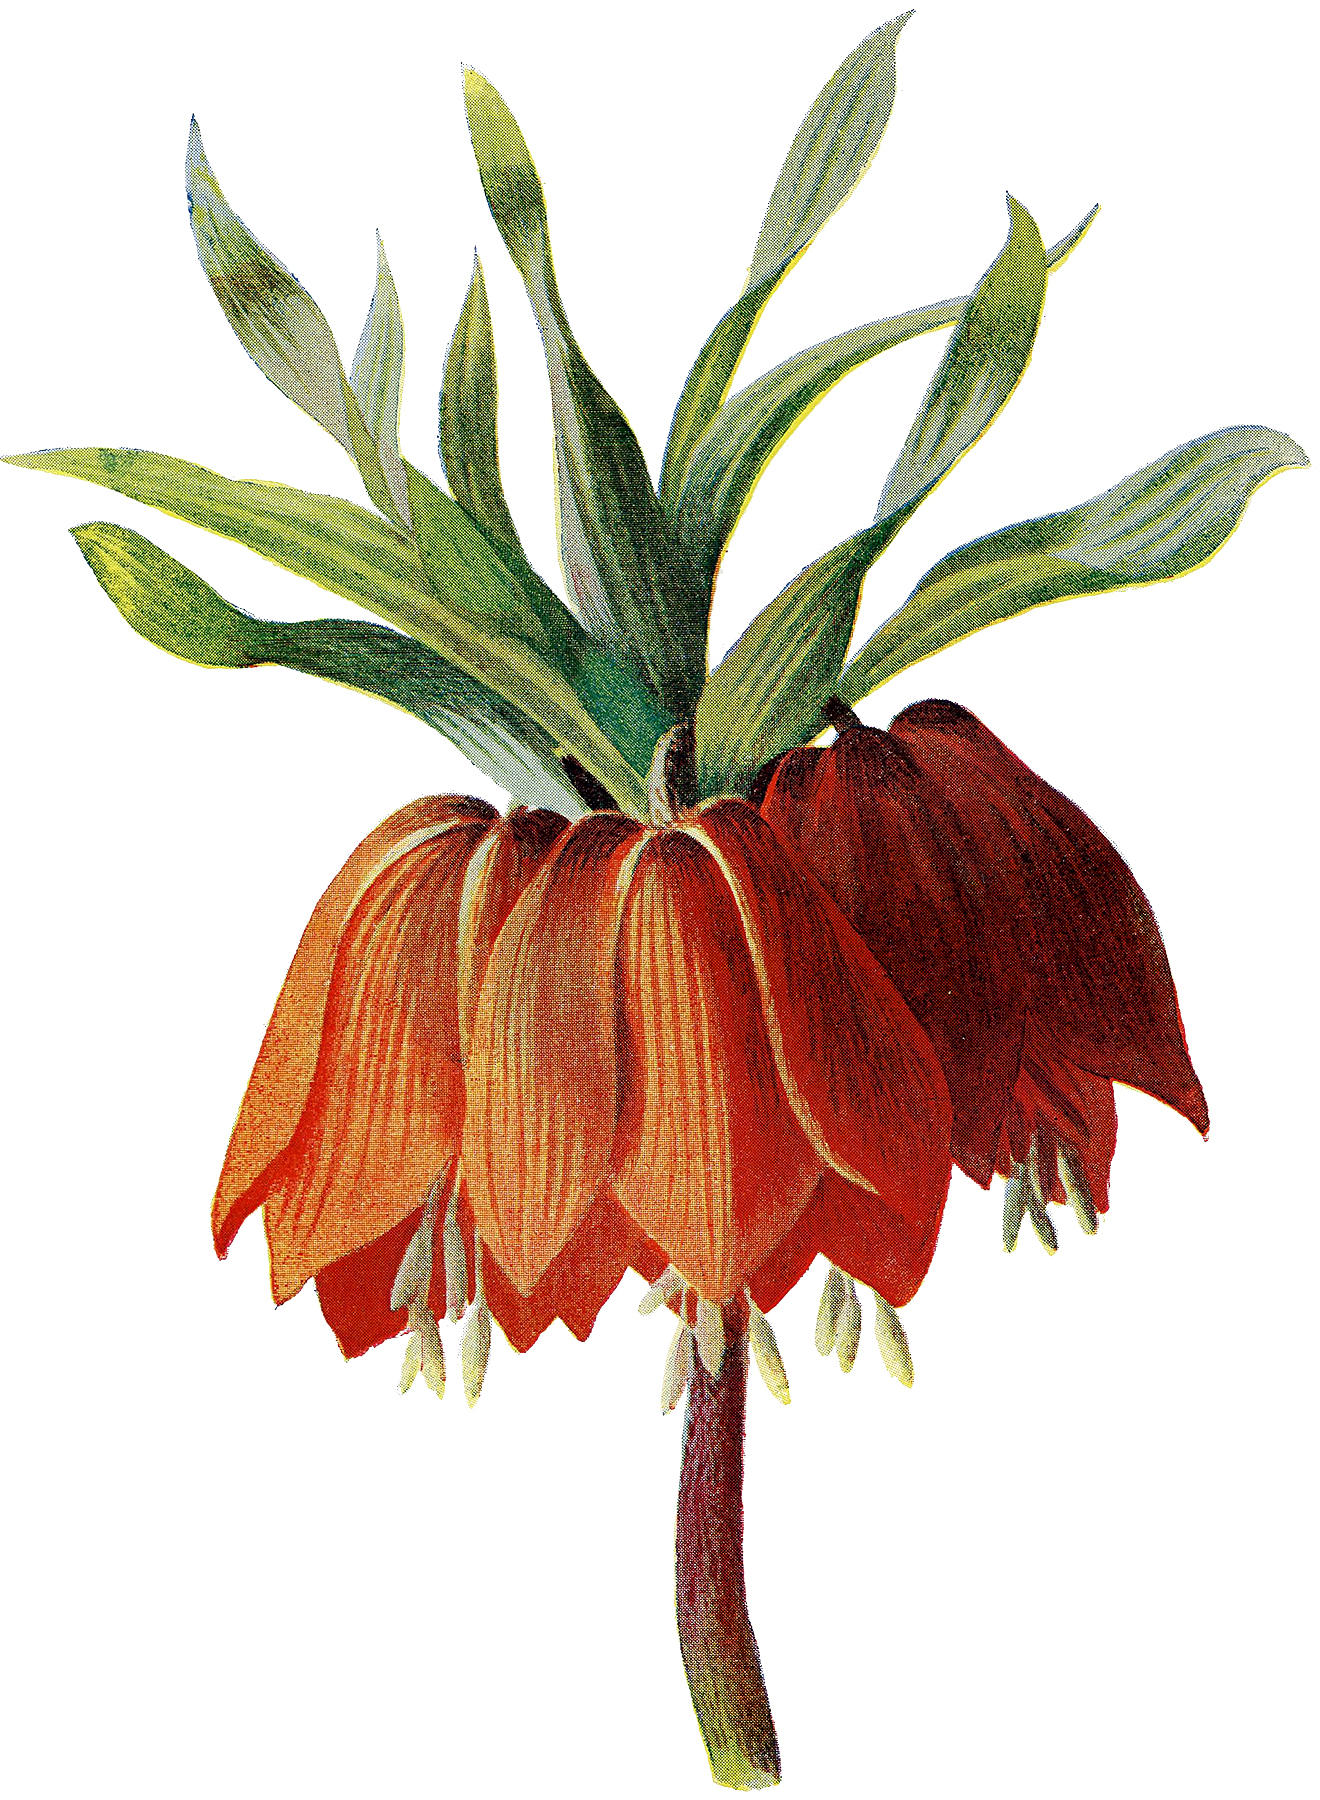 Vintage Stately Crown Imperial Flower Botanical Image